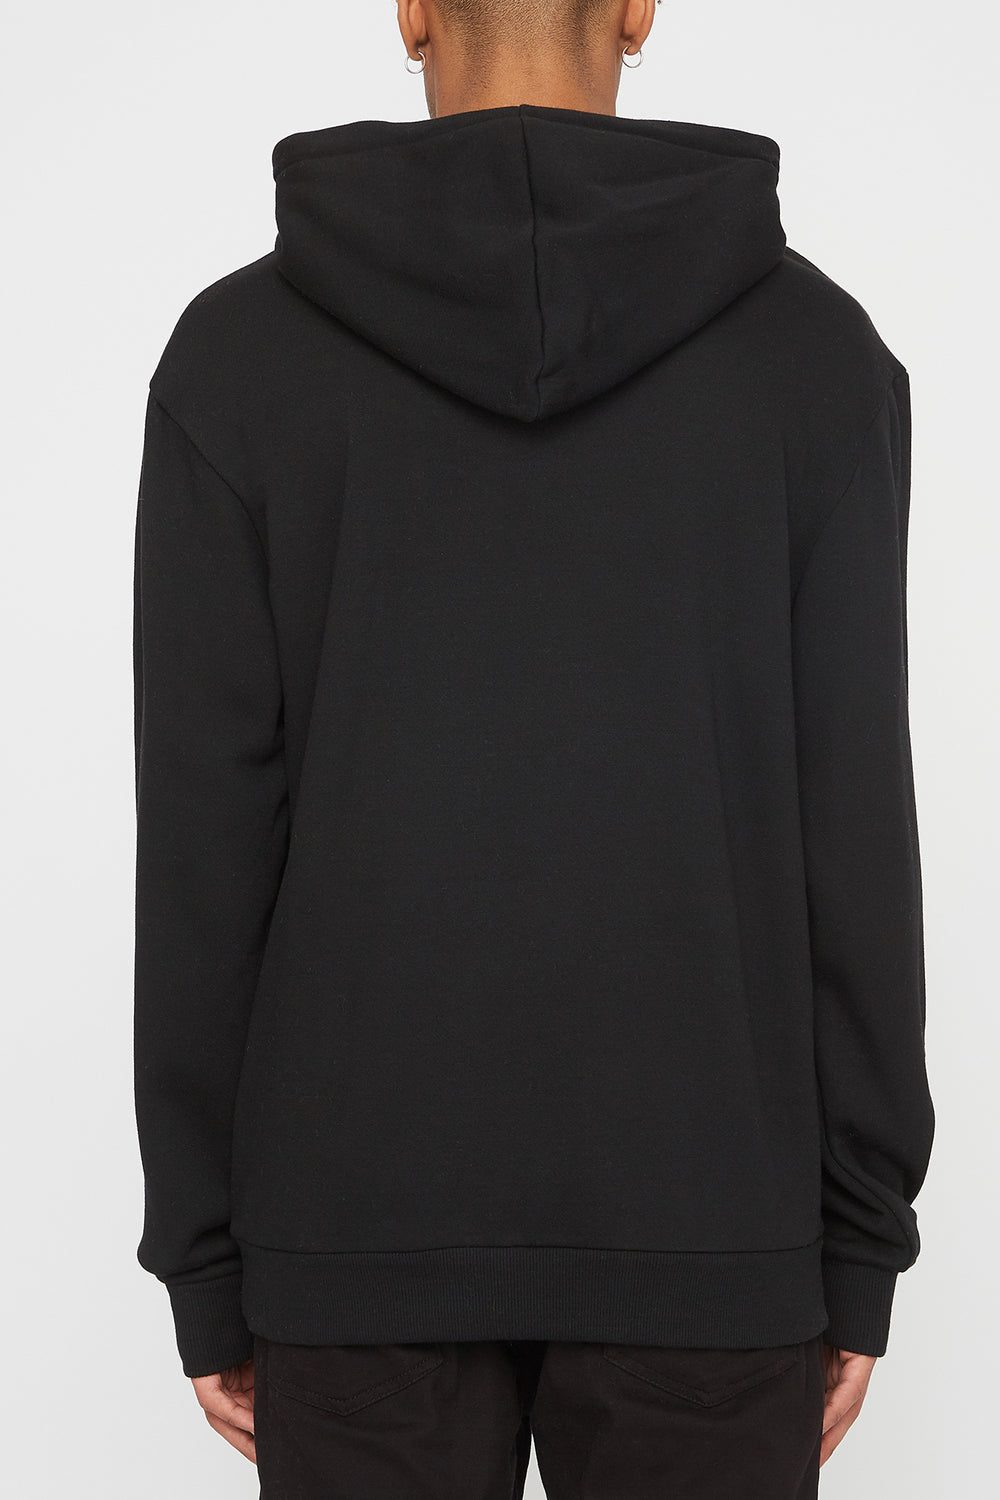 Young & Reckless Mens Neon Popover Hoodie Black